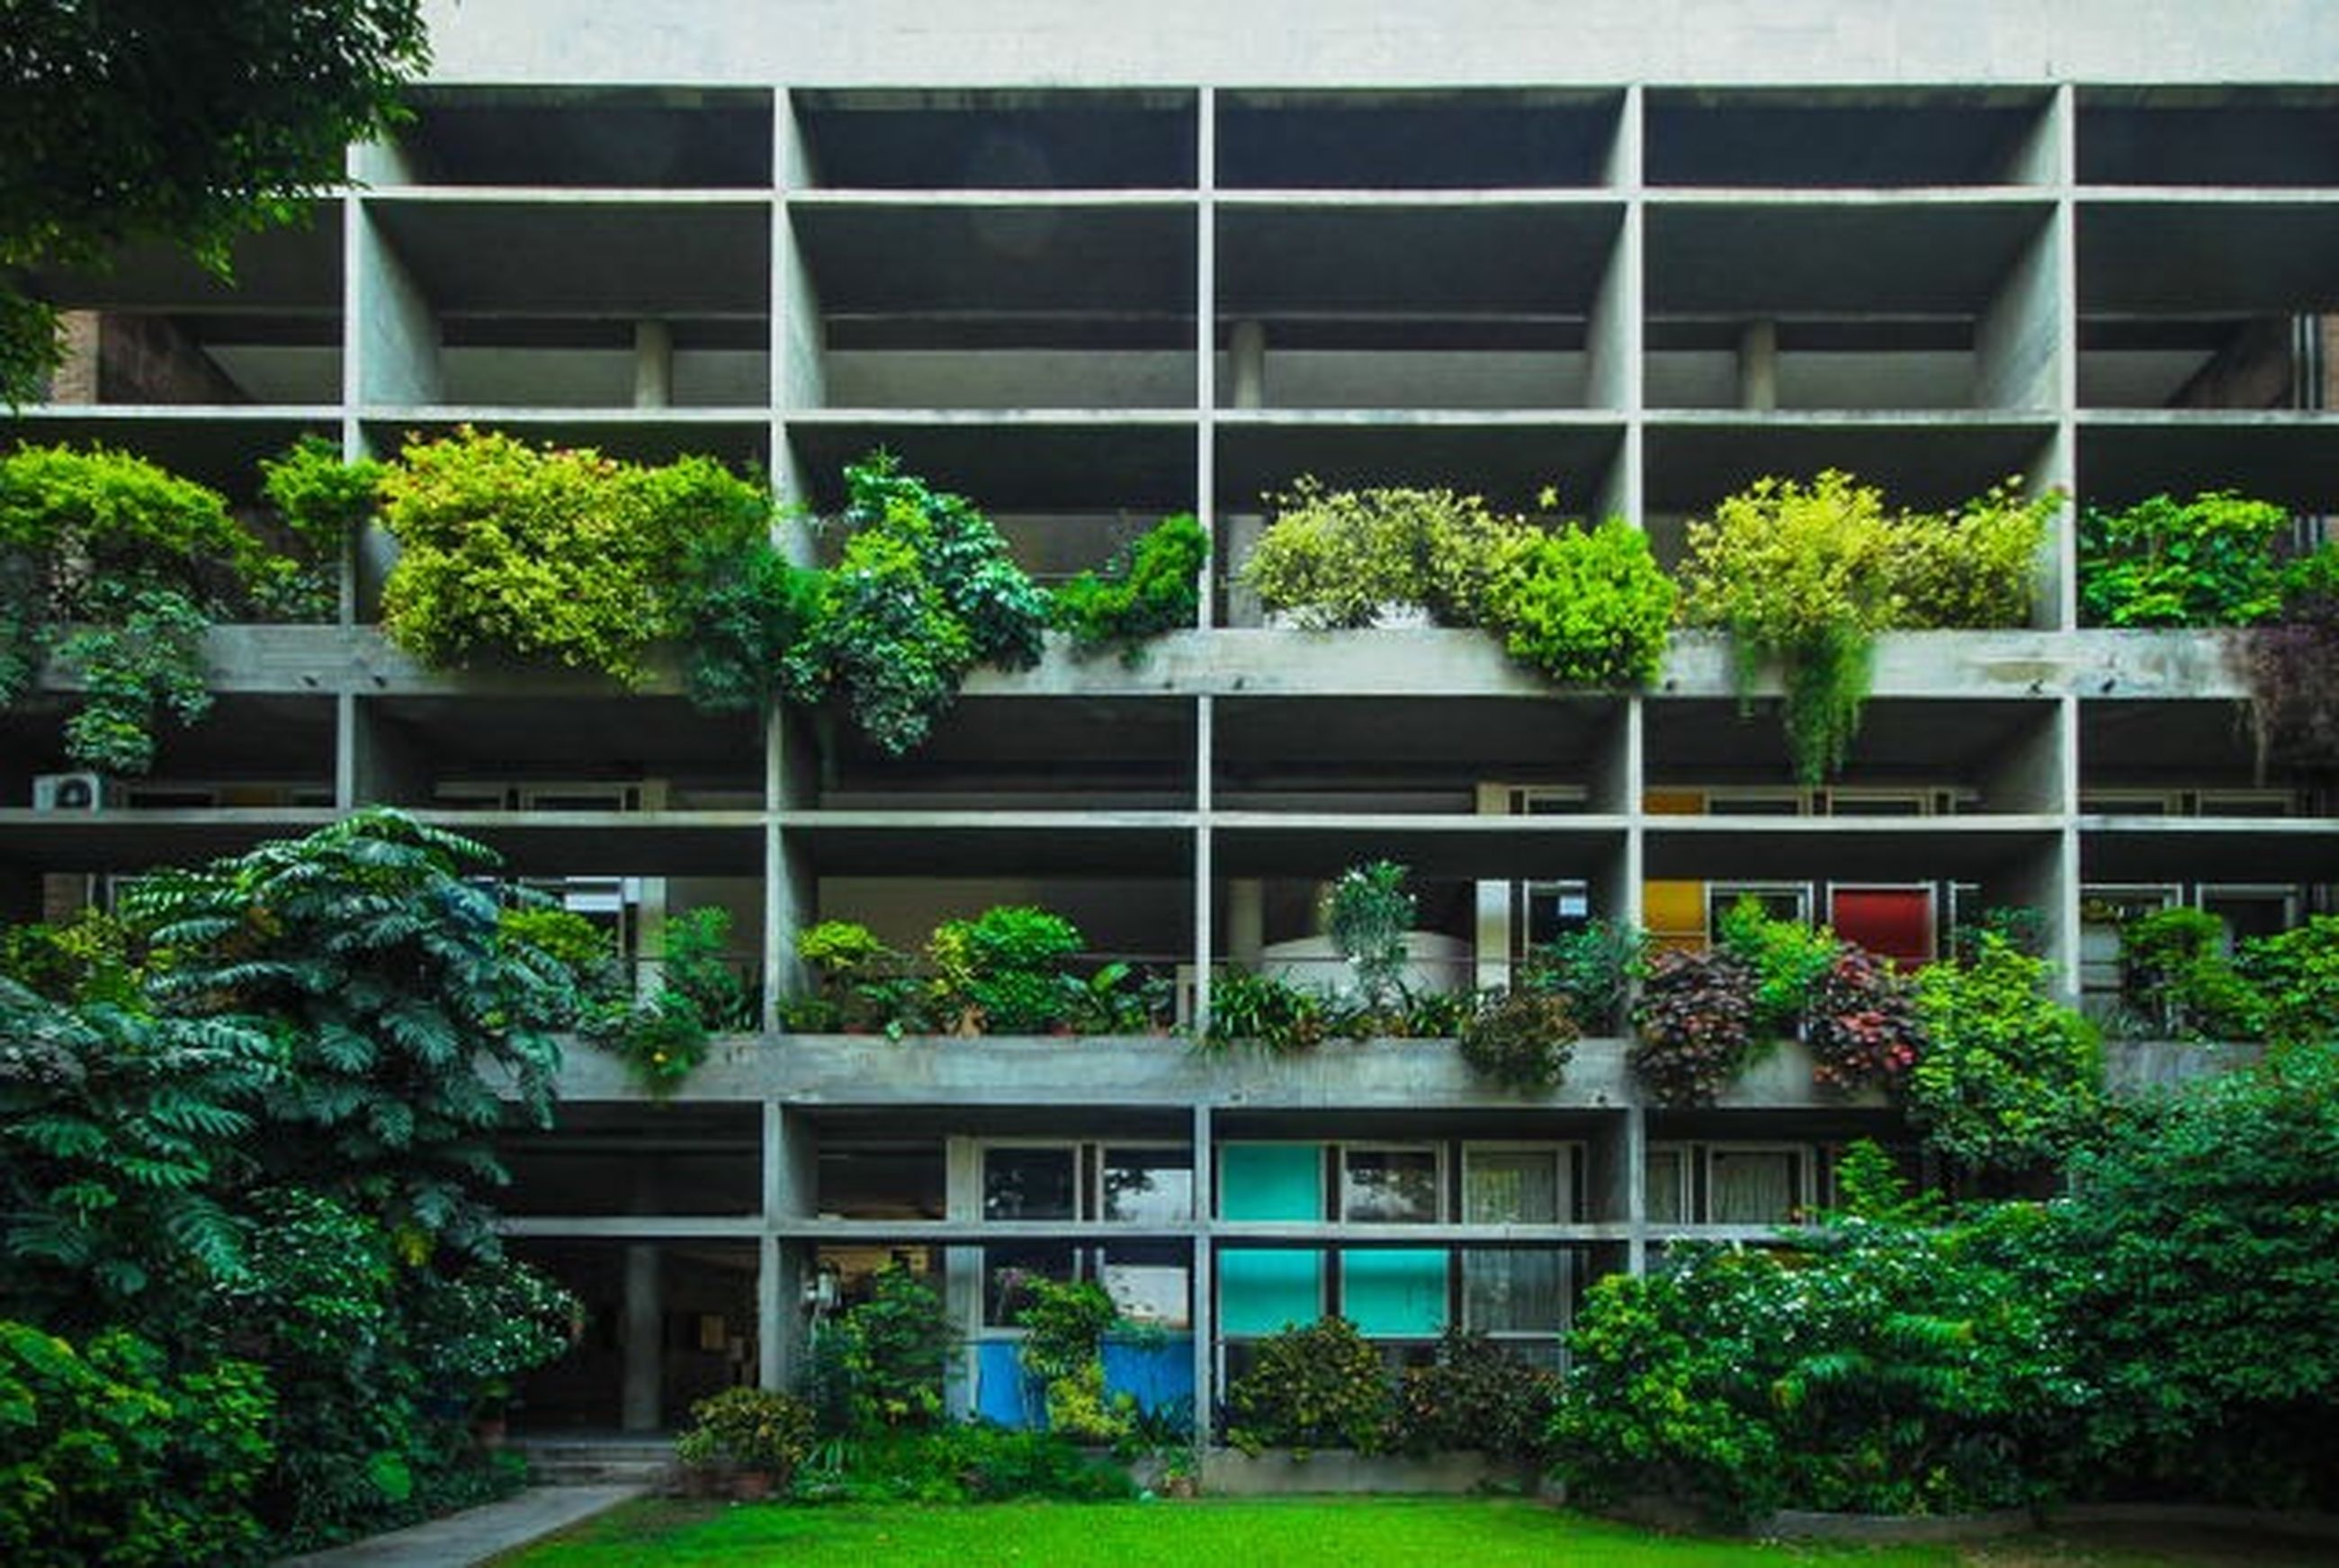 building exterior, built structure, architecture, plant, tree, growth, window, potted plant, green color, balcony, house, glass - material, residential structure, residential building, city, front or back yard, day, reflection, nature, outdoors